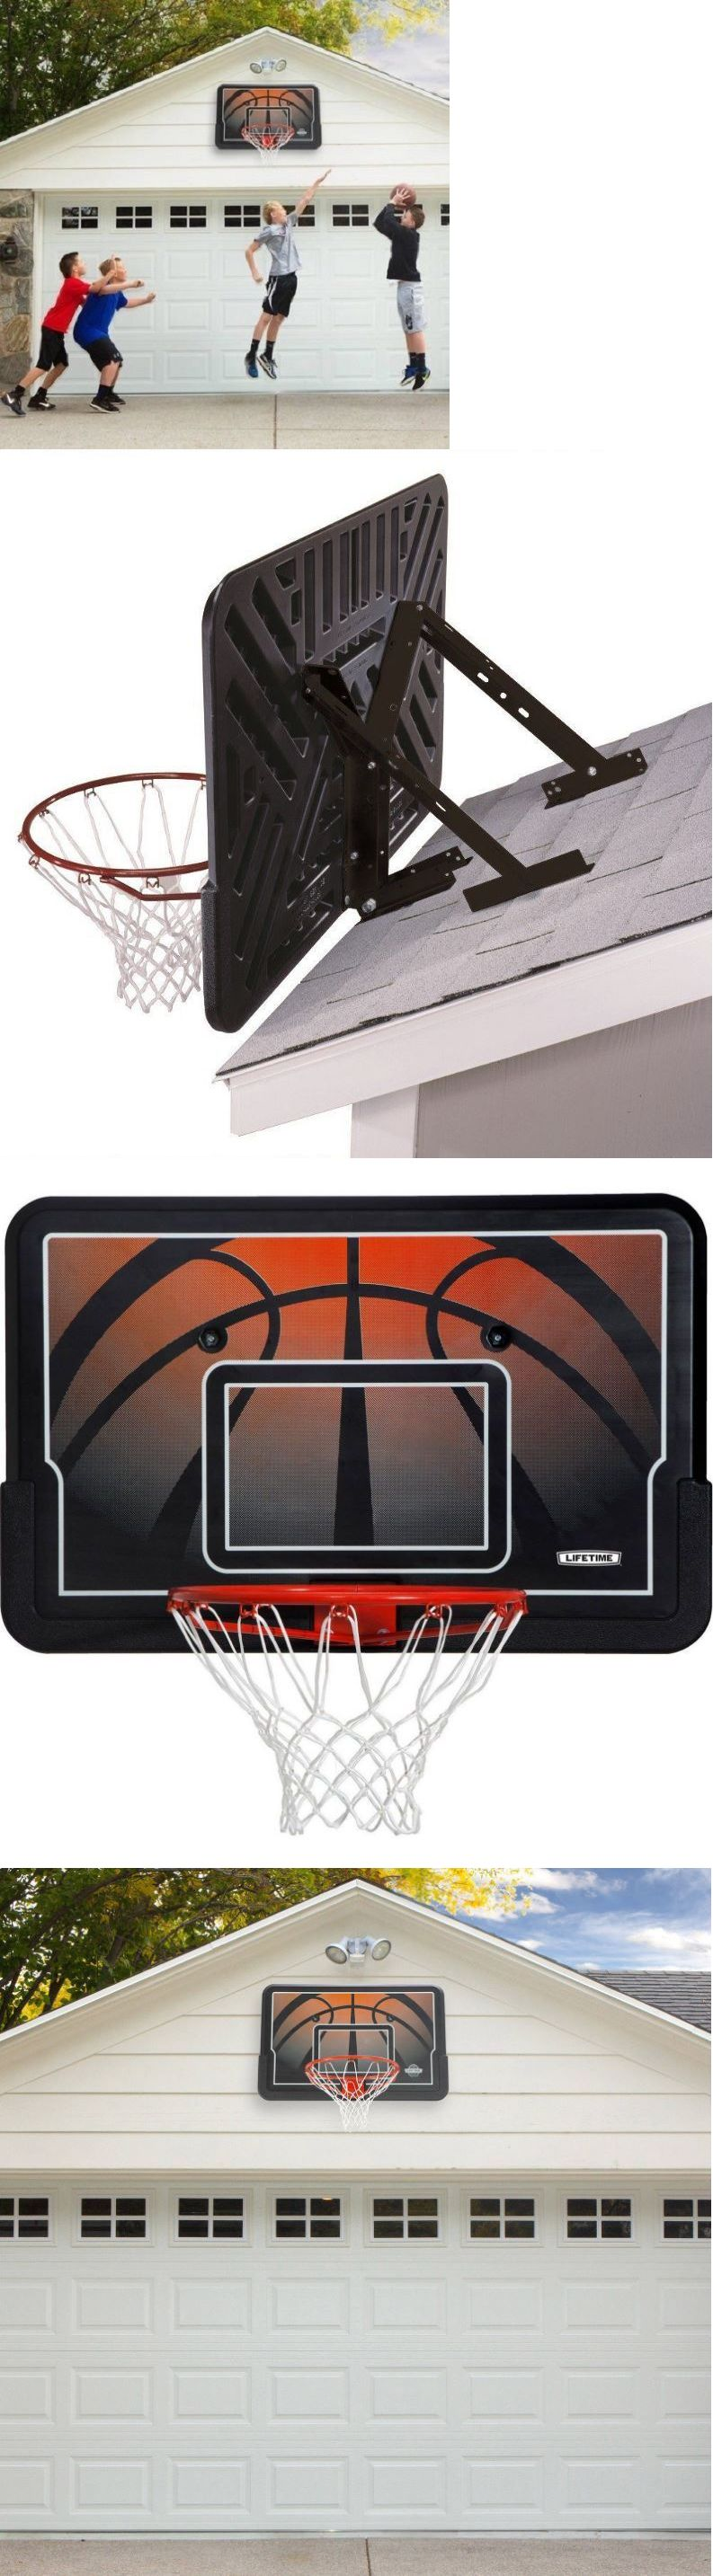 rims and nets 158962 new black backboard outdoor basketball hoop